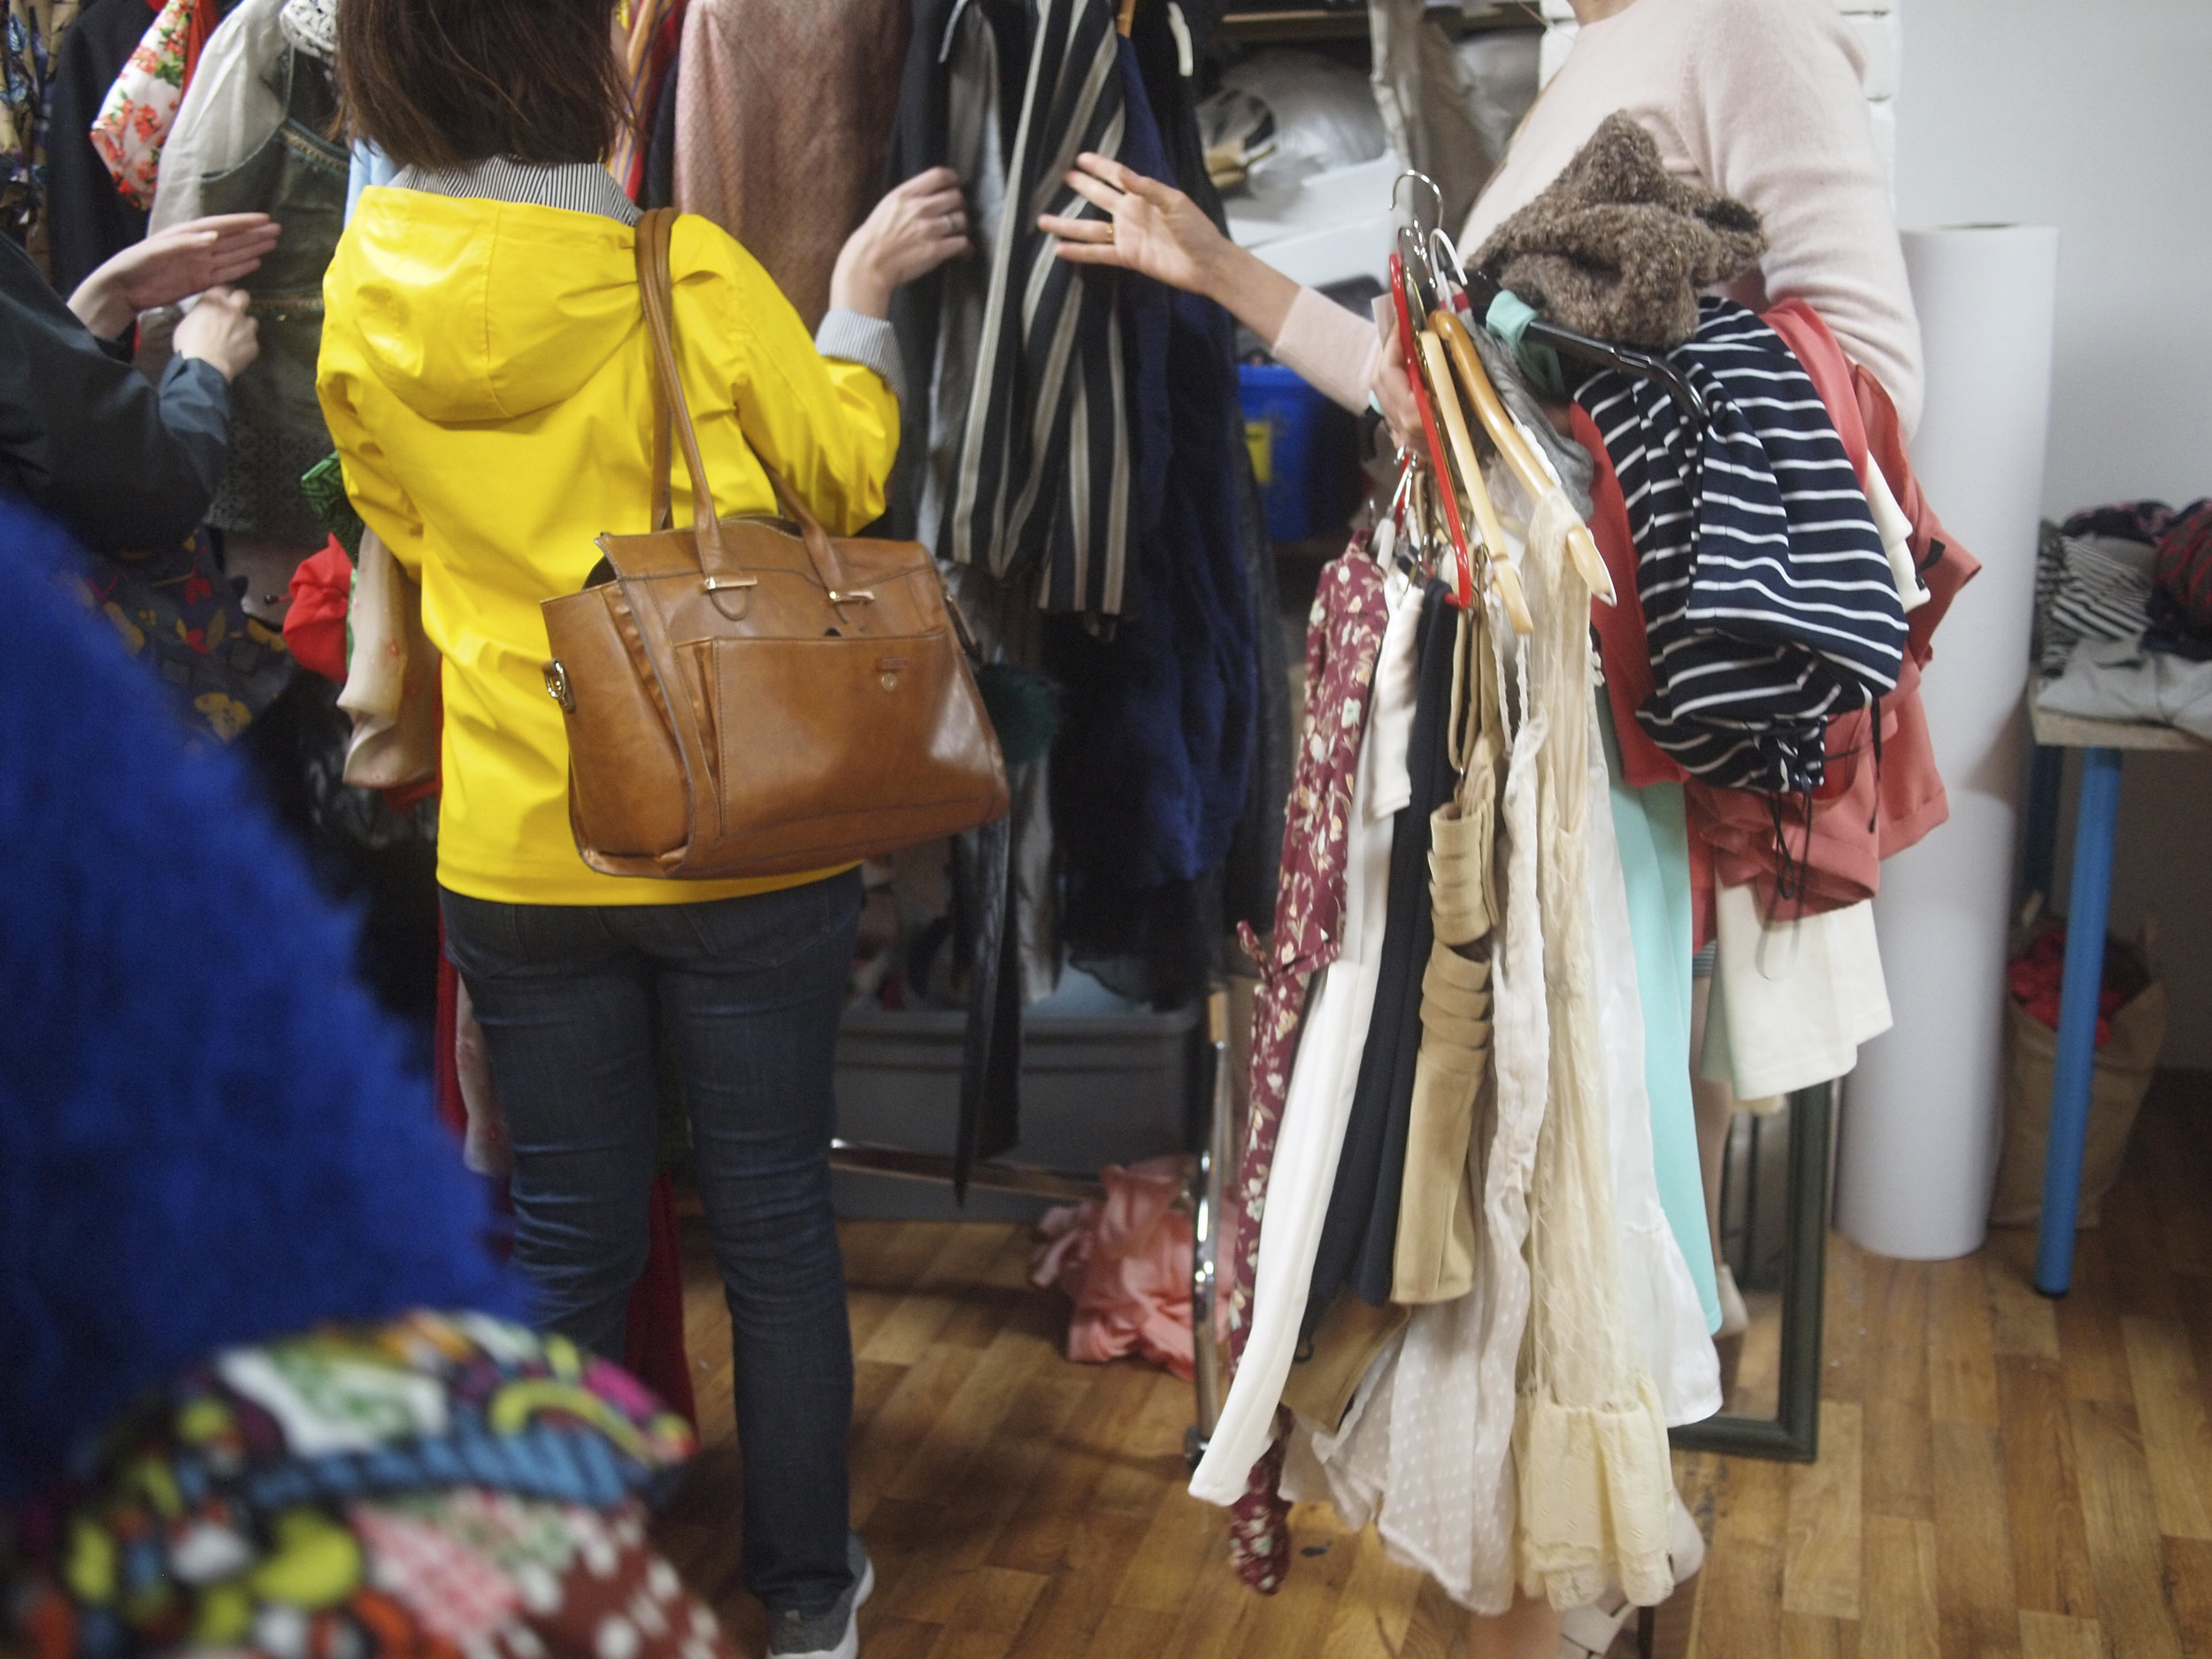 Stitched-Up-Clothes-Swap-2-July-16-8.jpg